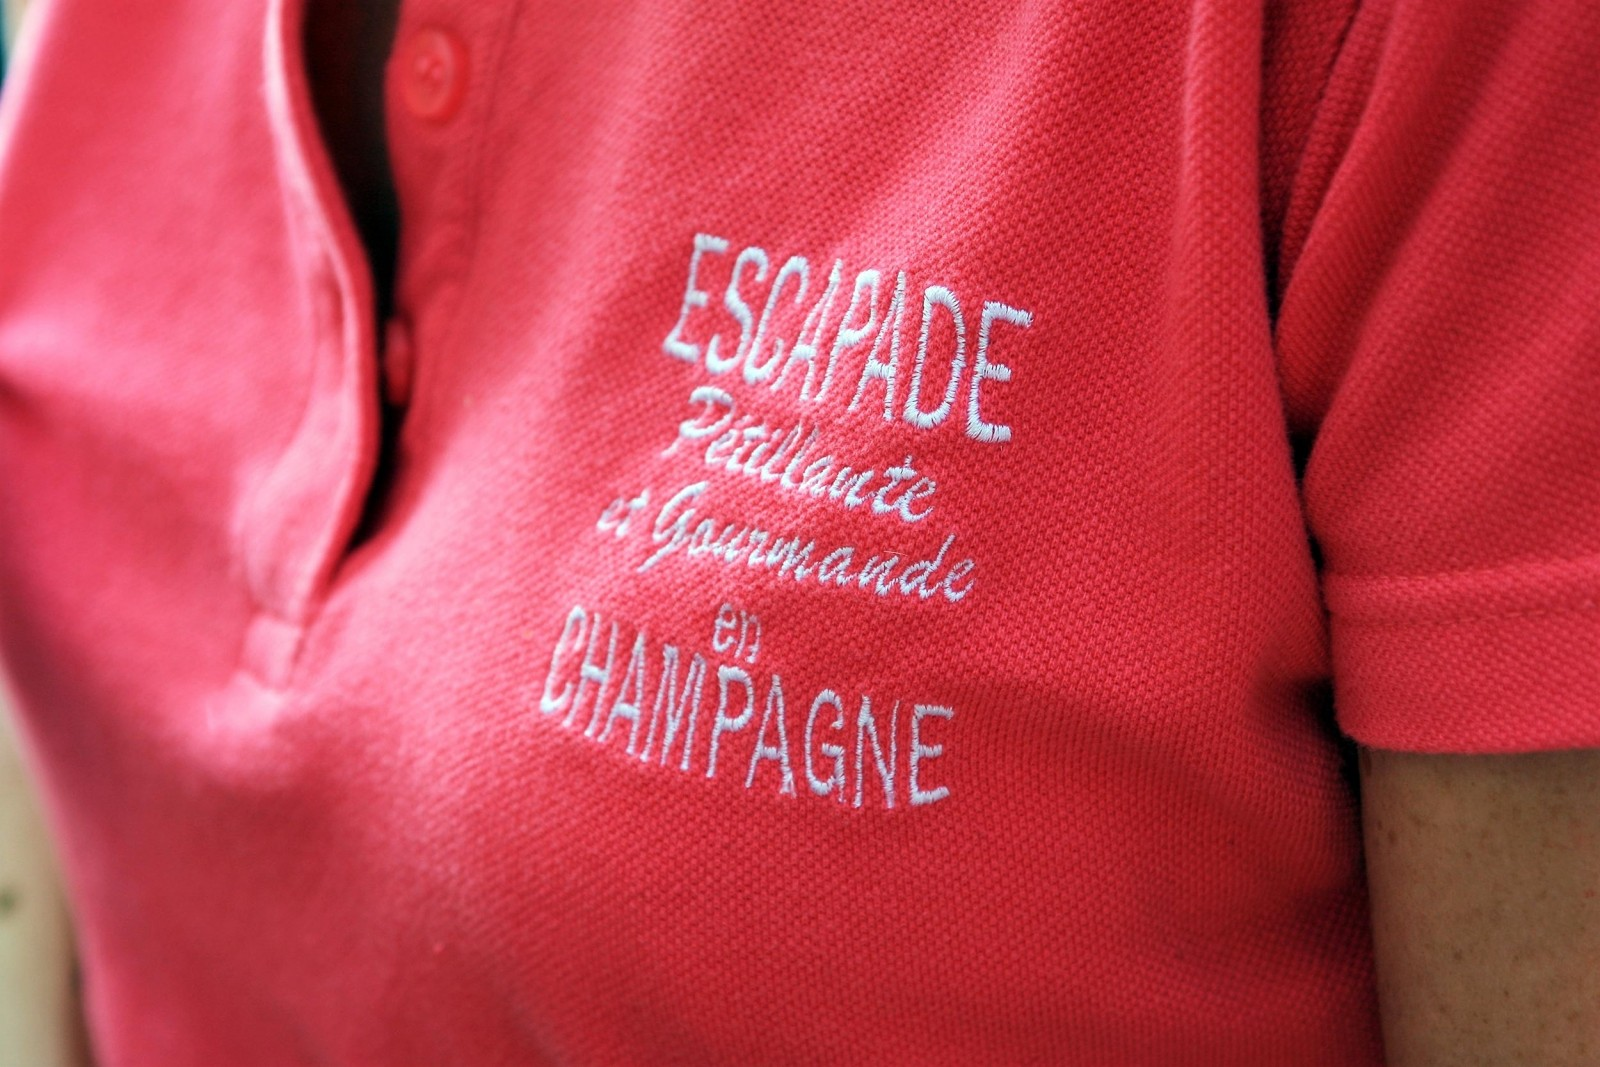 Escapade Gourmande et Pétillante en Champagne, association